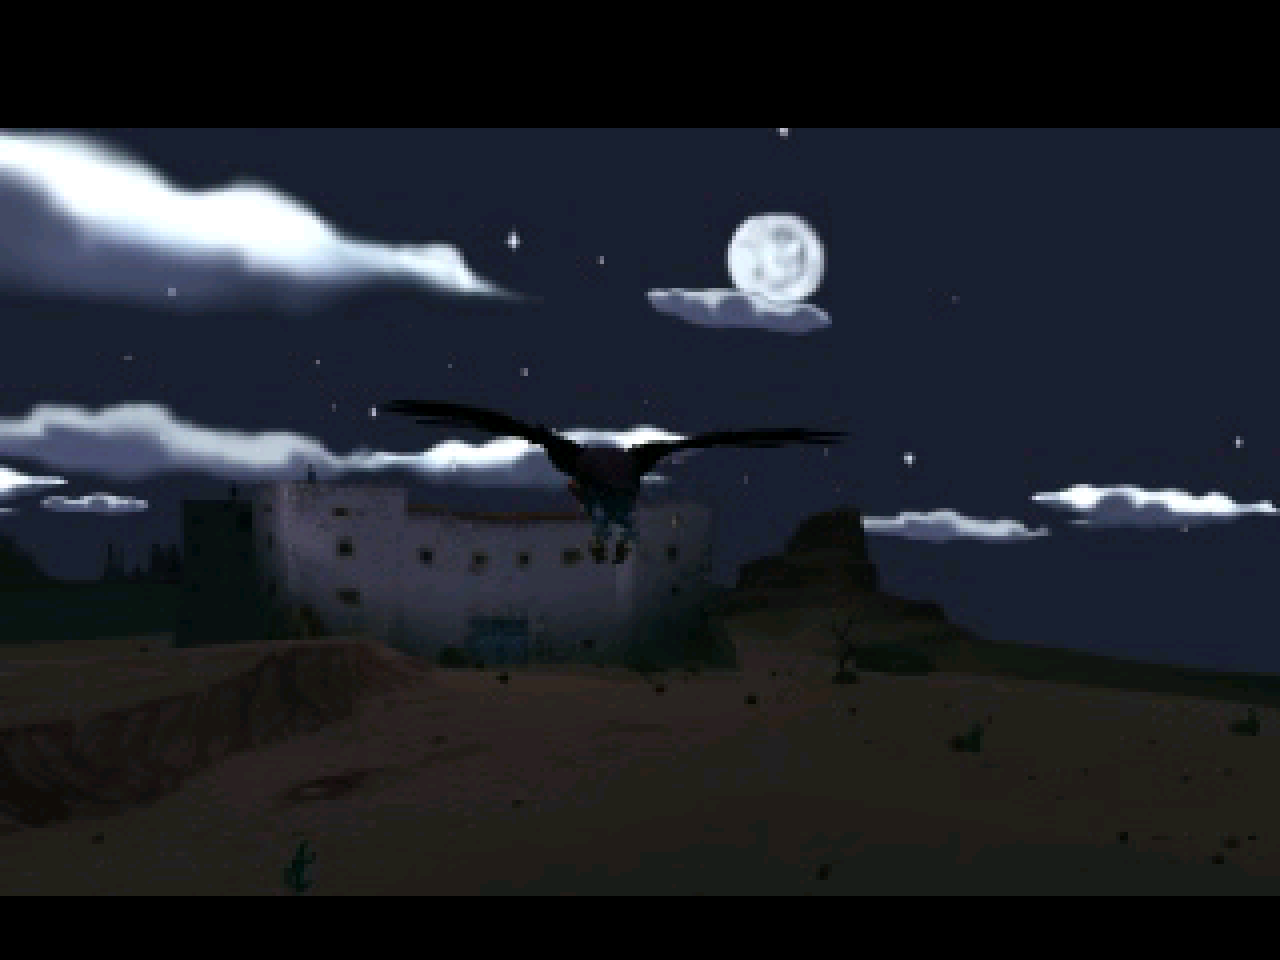 https://s3.eu-west-3.amazonaws.com/games.anthony-dessalles.com/Lucky Luke PS1 2020 - Screenshots/Lucky Luke-201124-170306.png